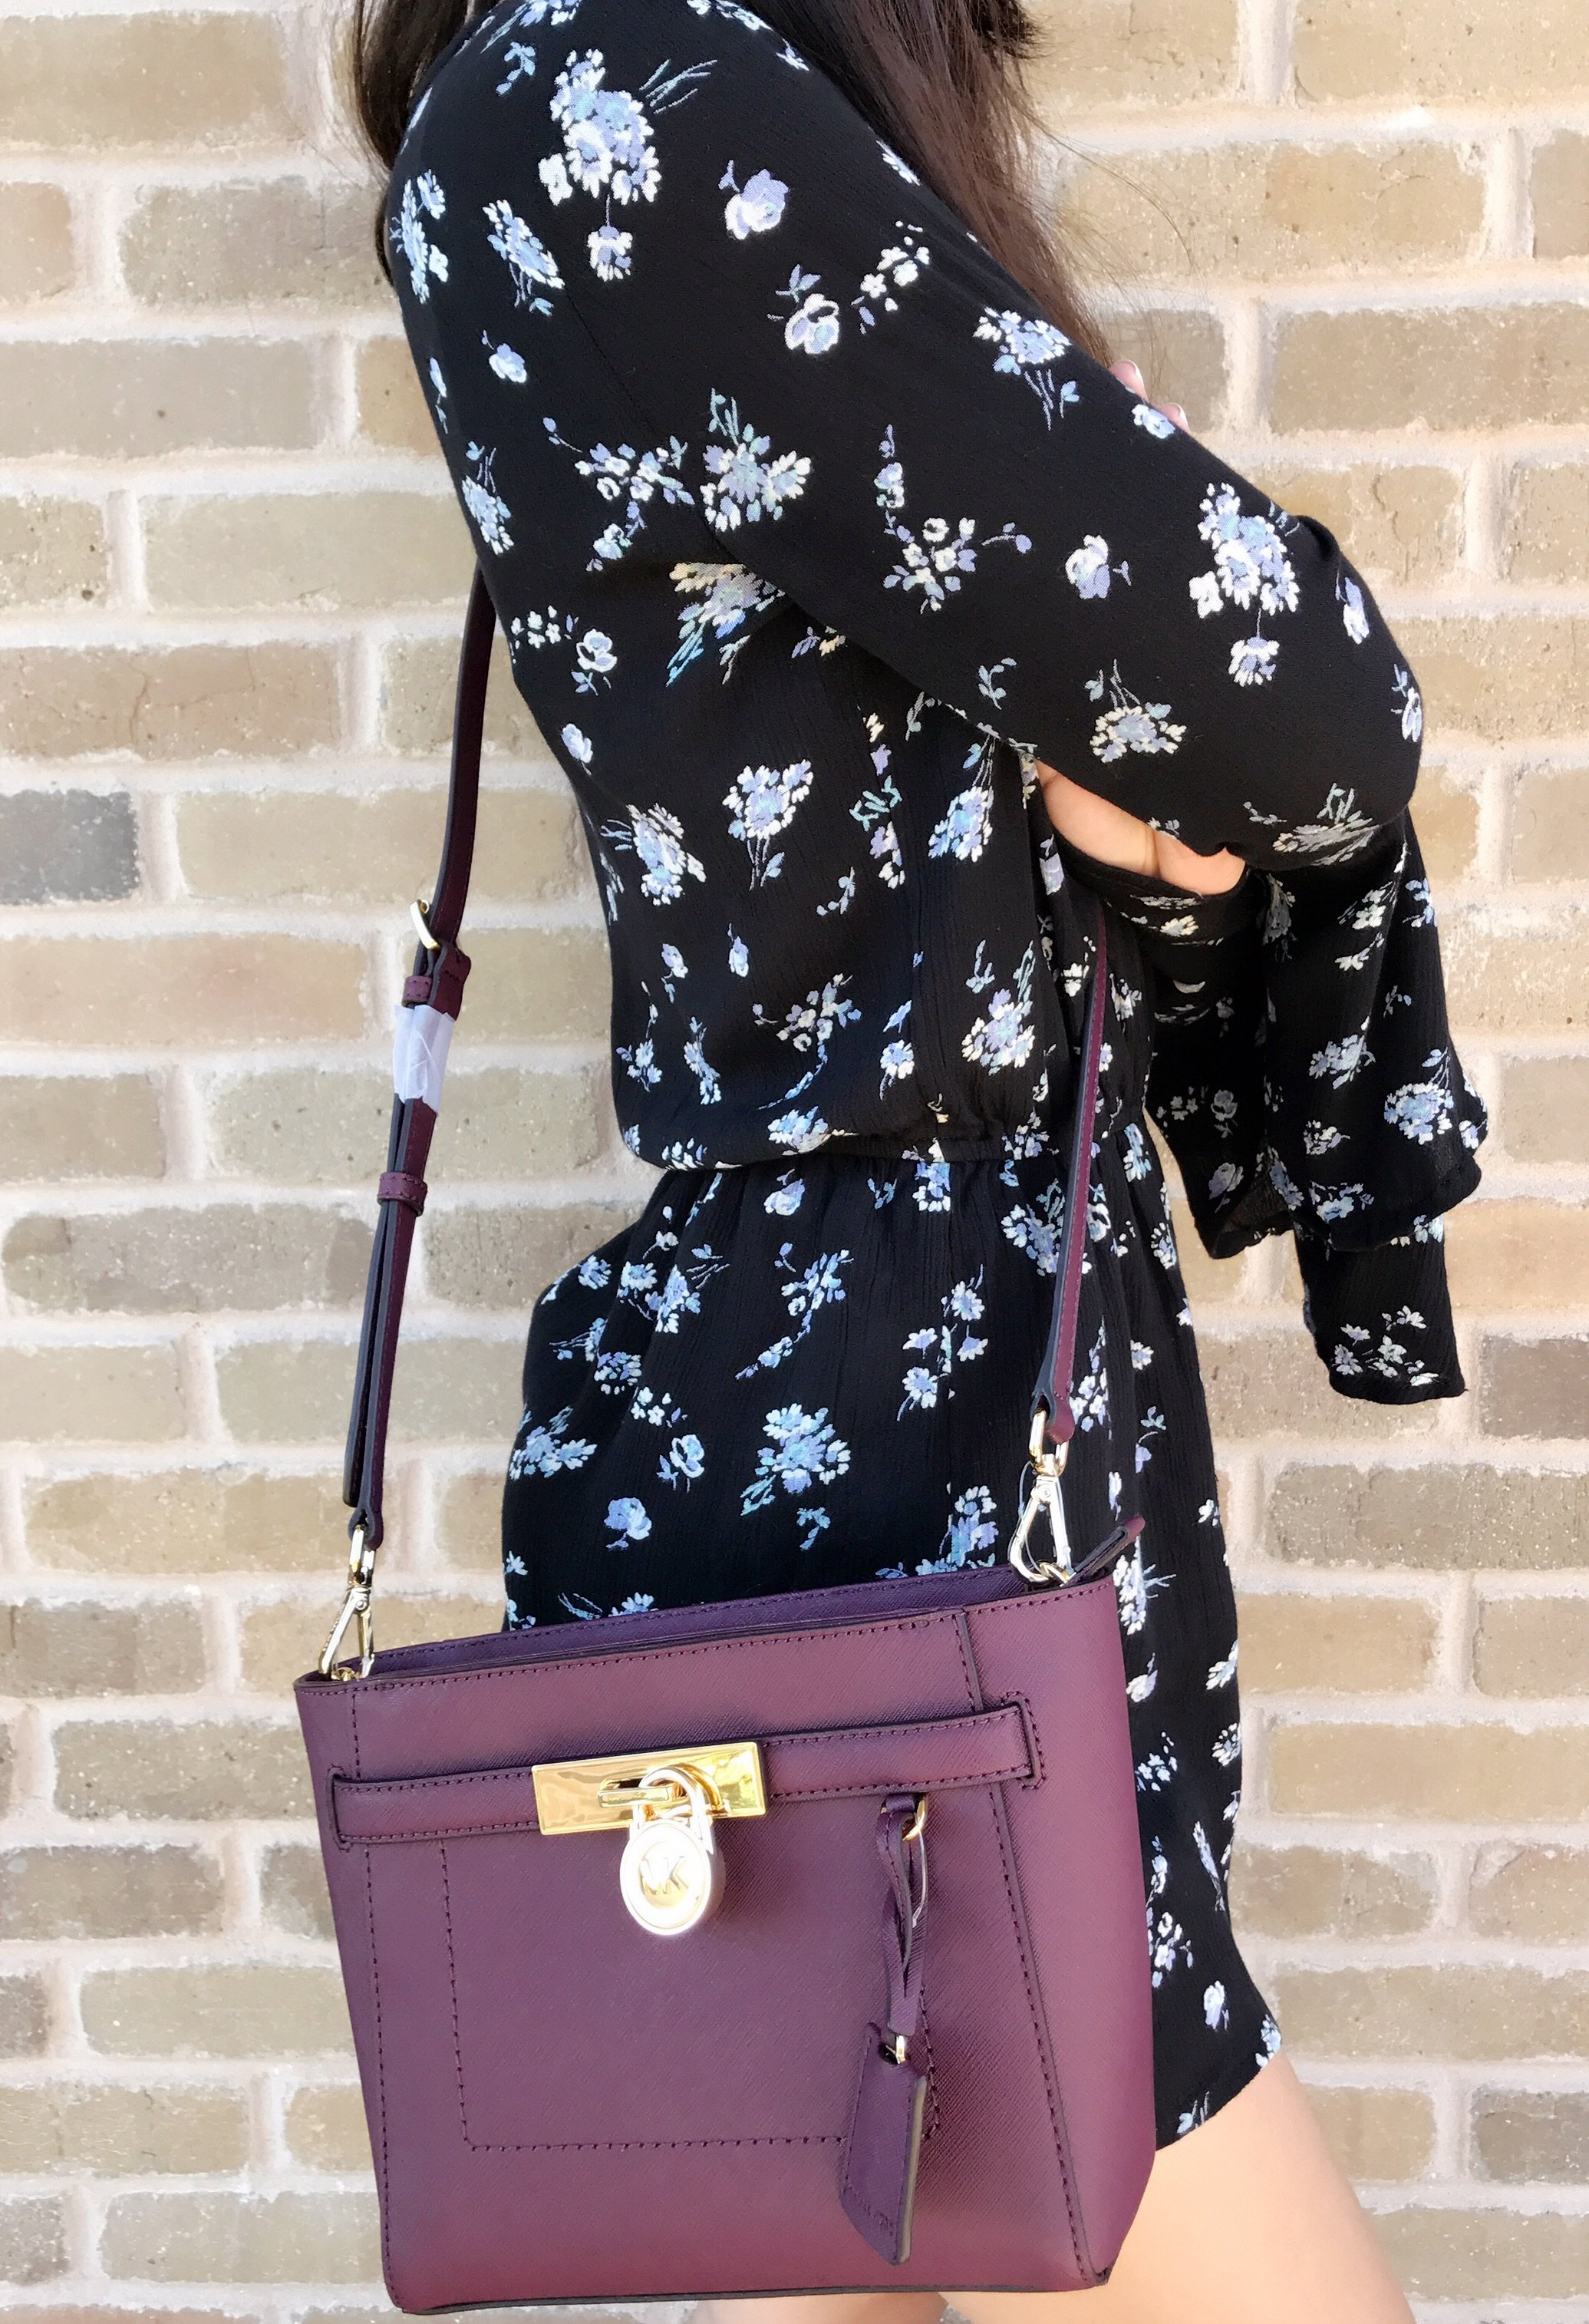 Michael Kors - NWT Michael Kors Hamilton Traveler Top Zip Small Crossbody  Plum Purple - Walmart.com 0dfc31fb74